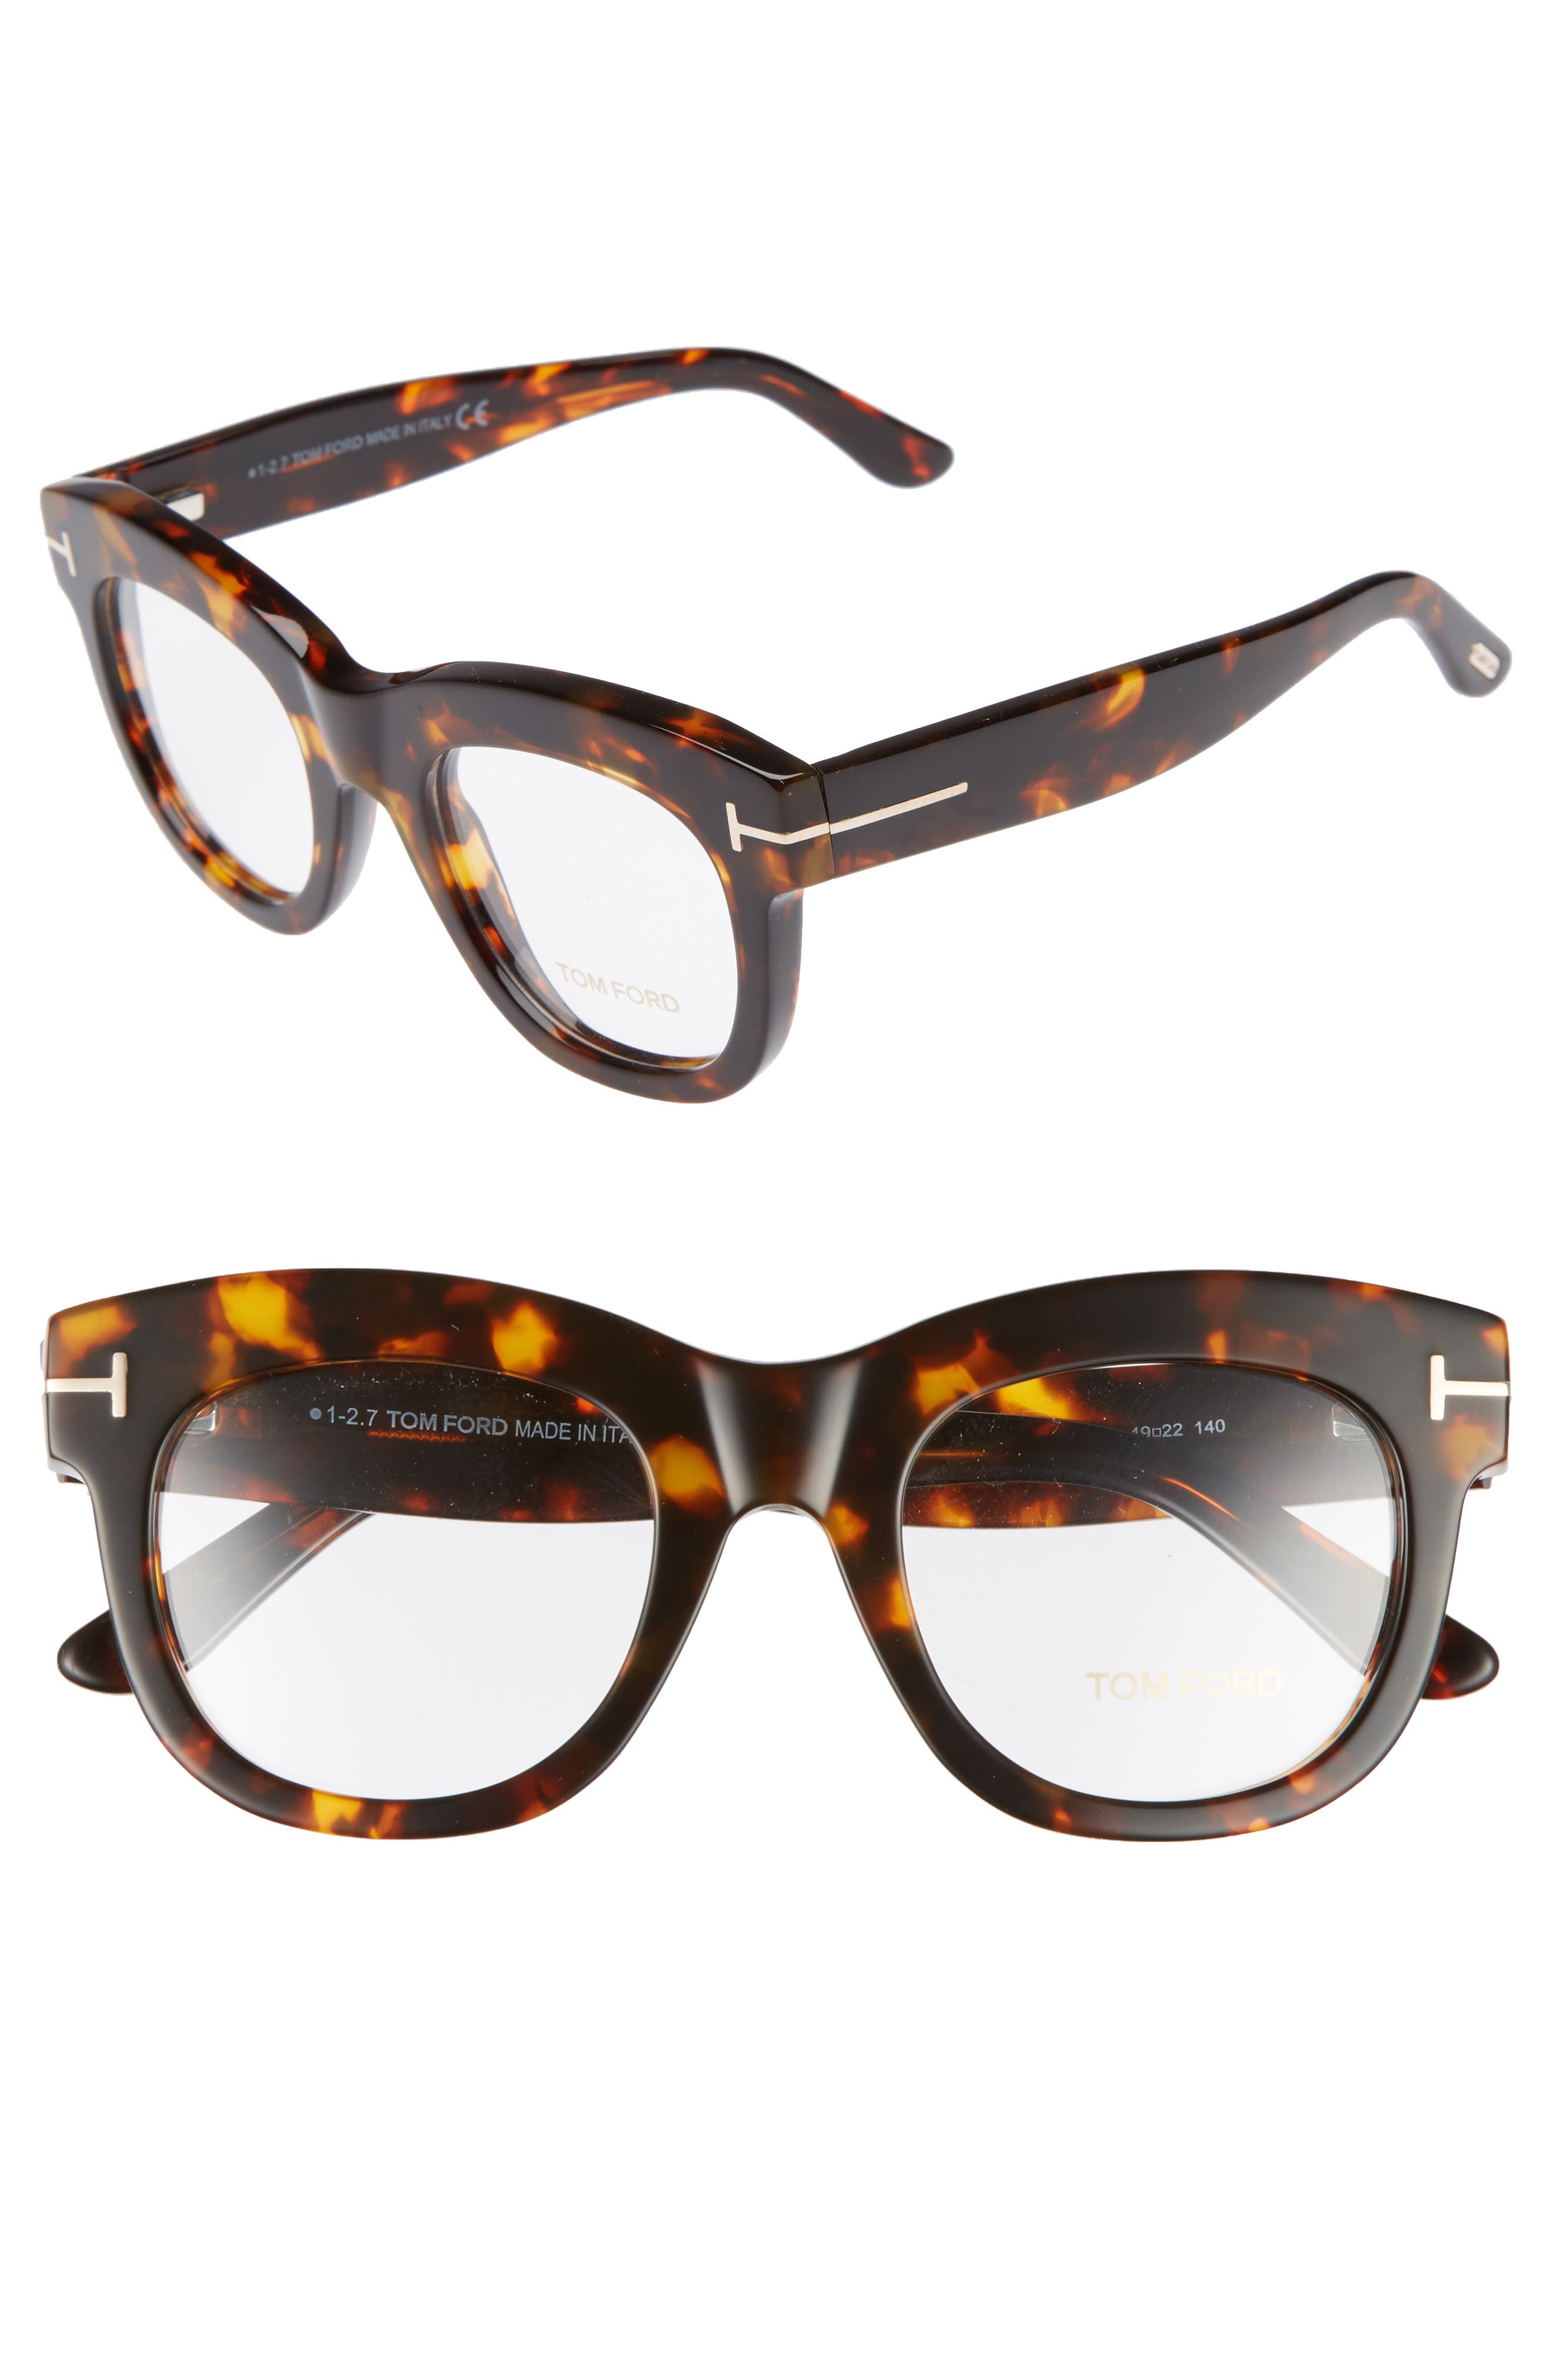 c5c05afeb2b Tom ford optical glasses nordstrom jpg 1660x2546 Tom ford eyewear